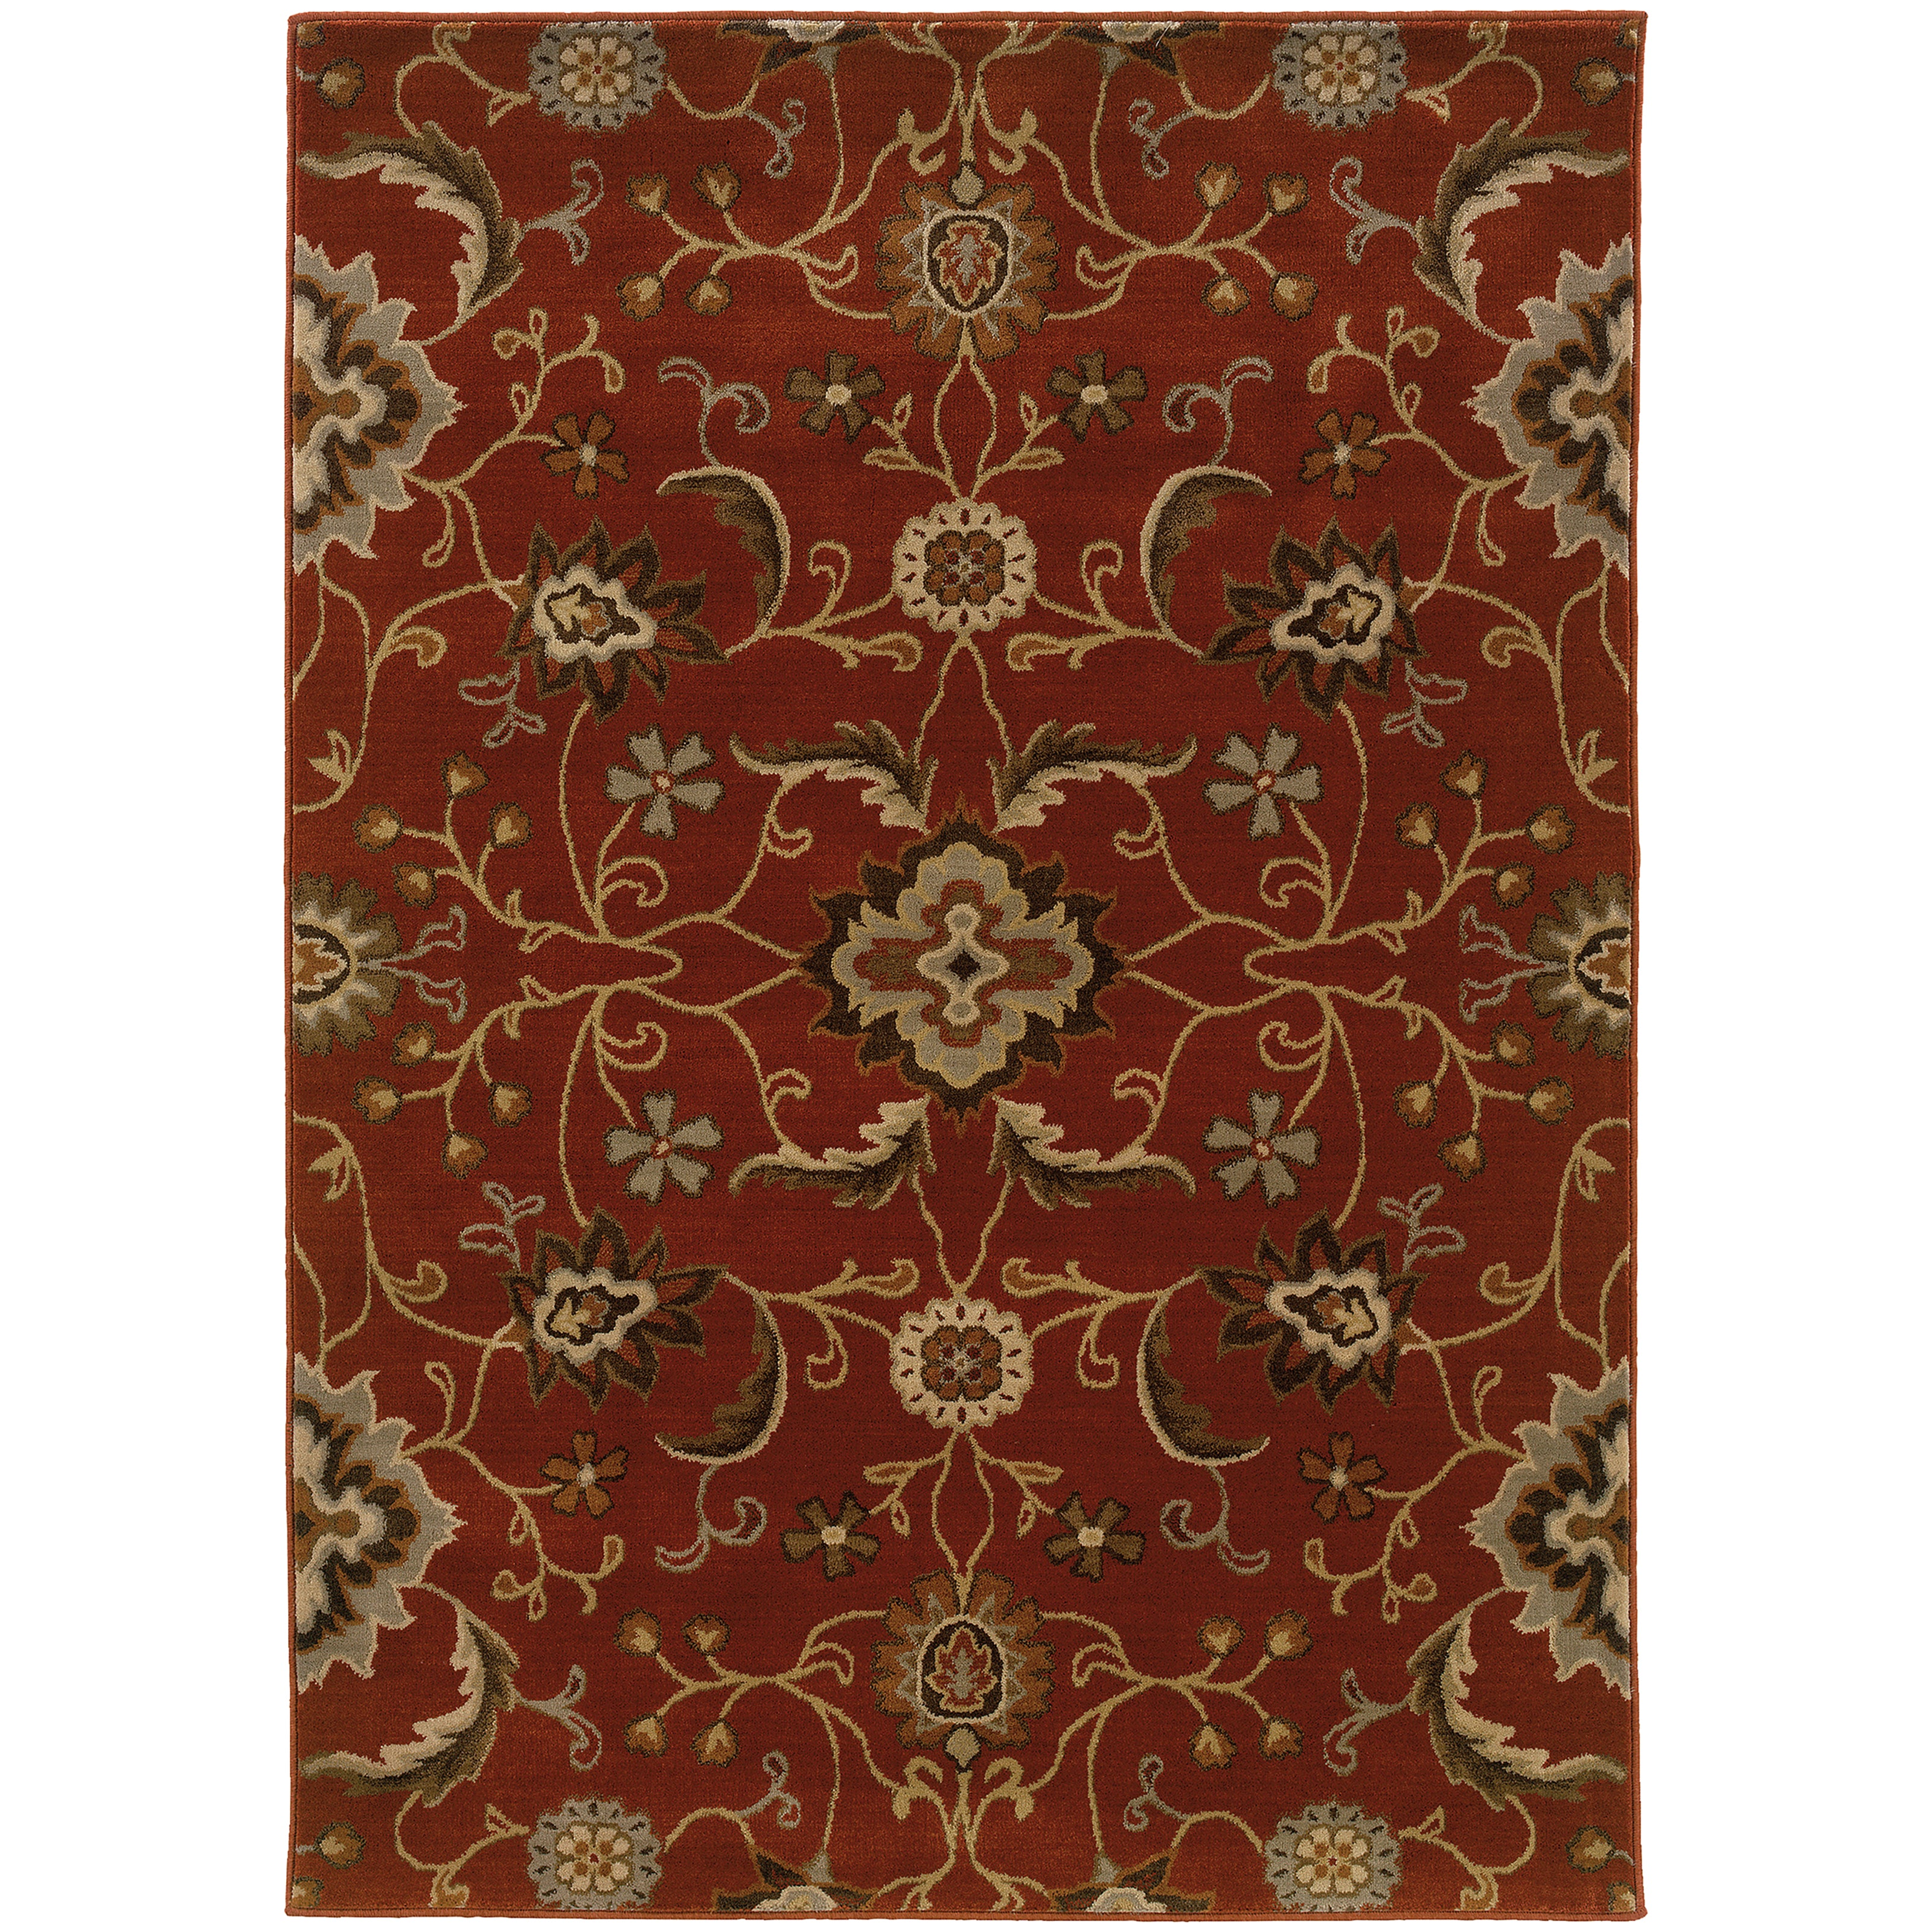 Oriental Weavers Casablanca Red/Multi Floral 4471B Area Rug